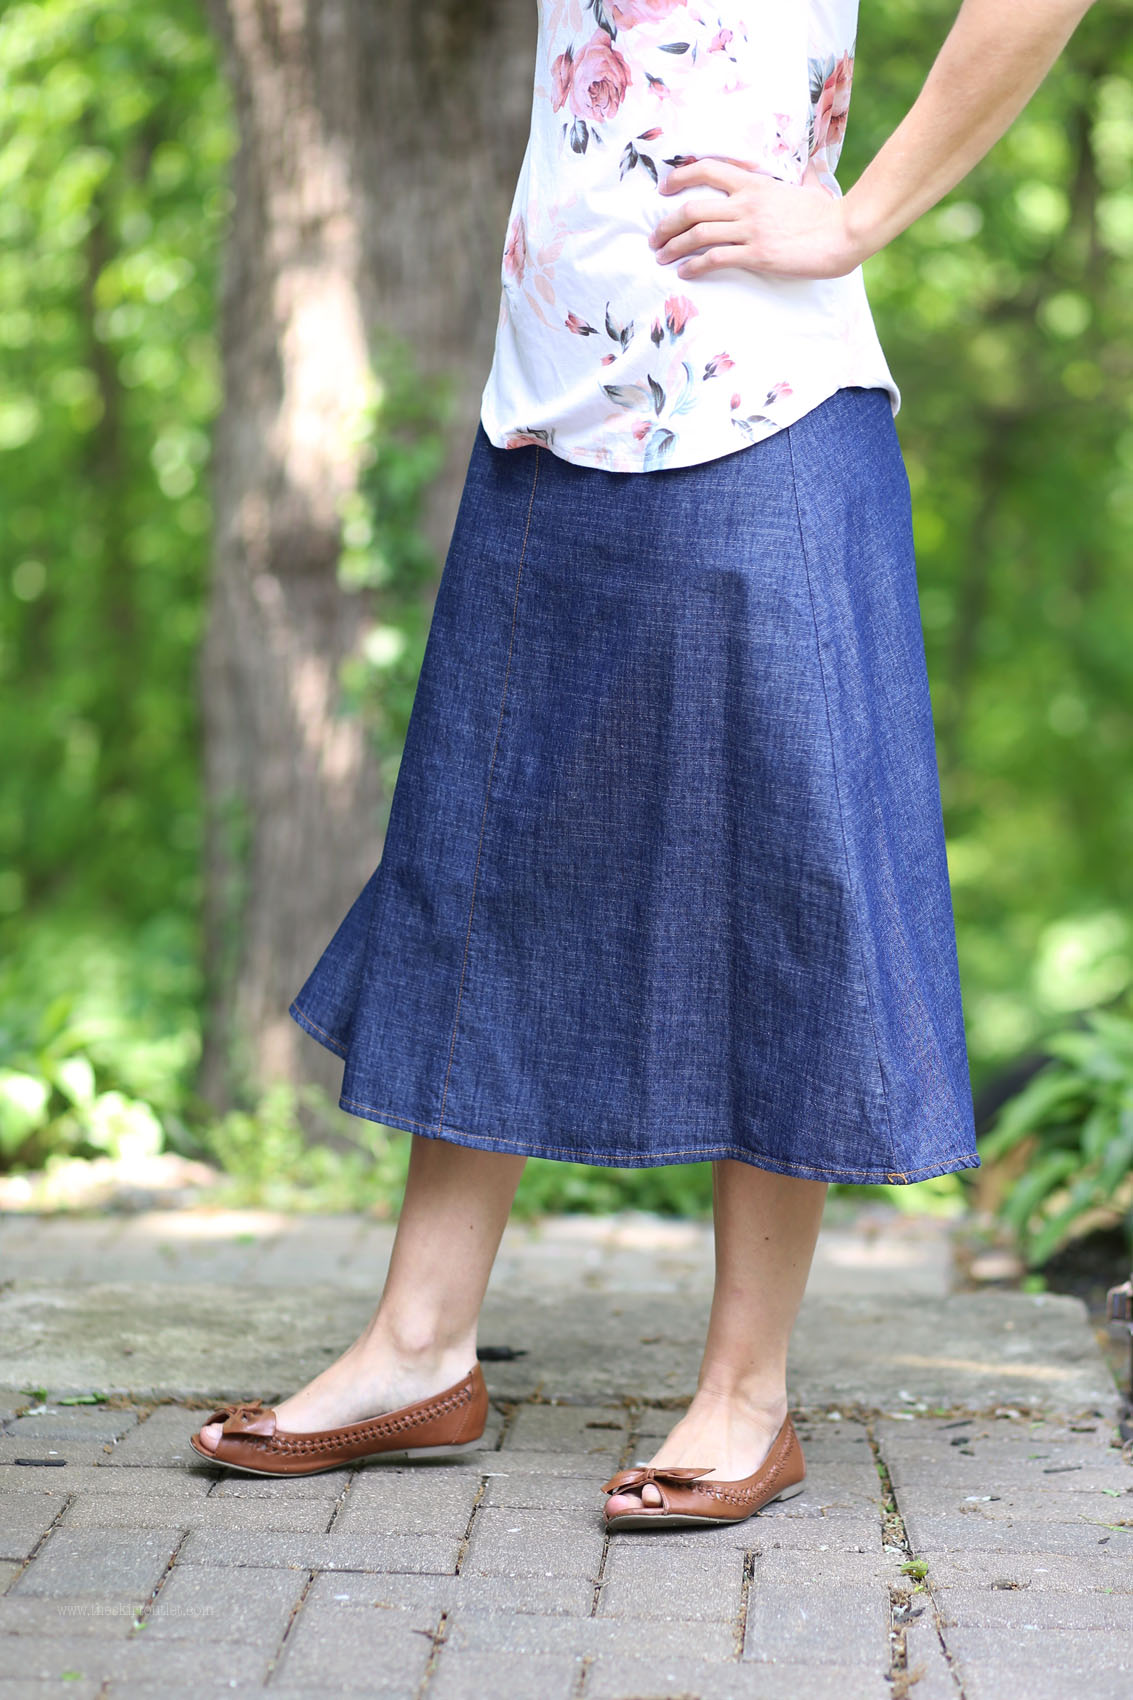 Sienna Modest Denim Calf Length Skirt | Jean Skirt Sizes 6-12